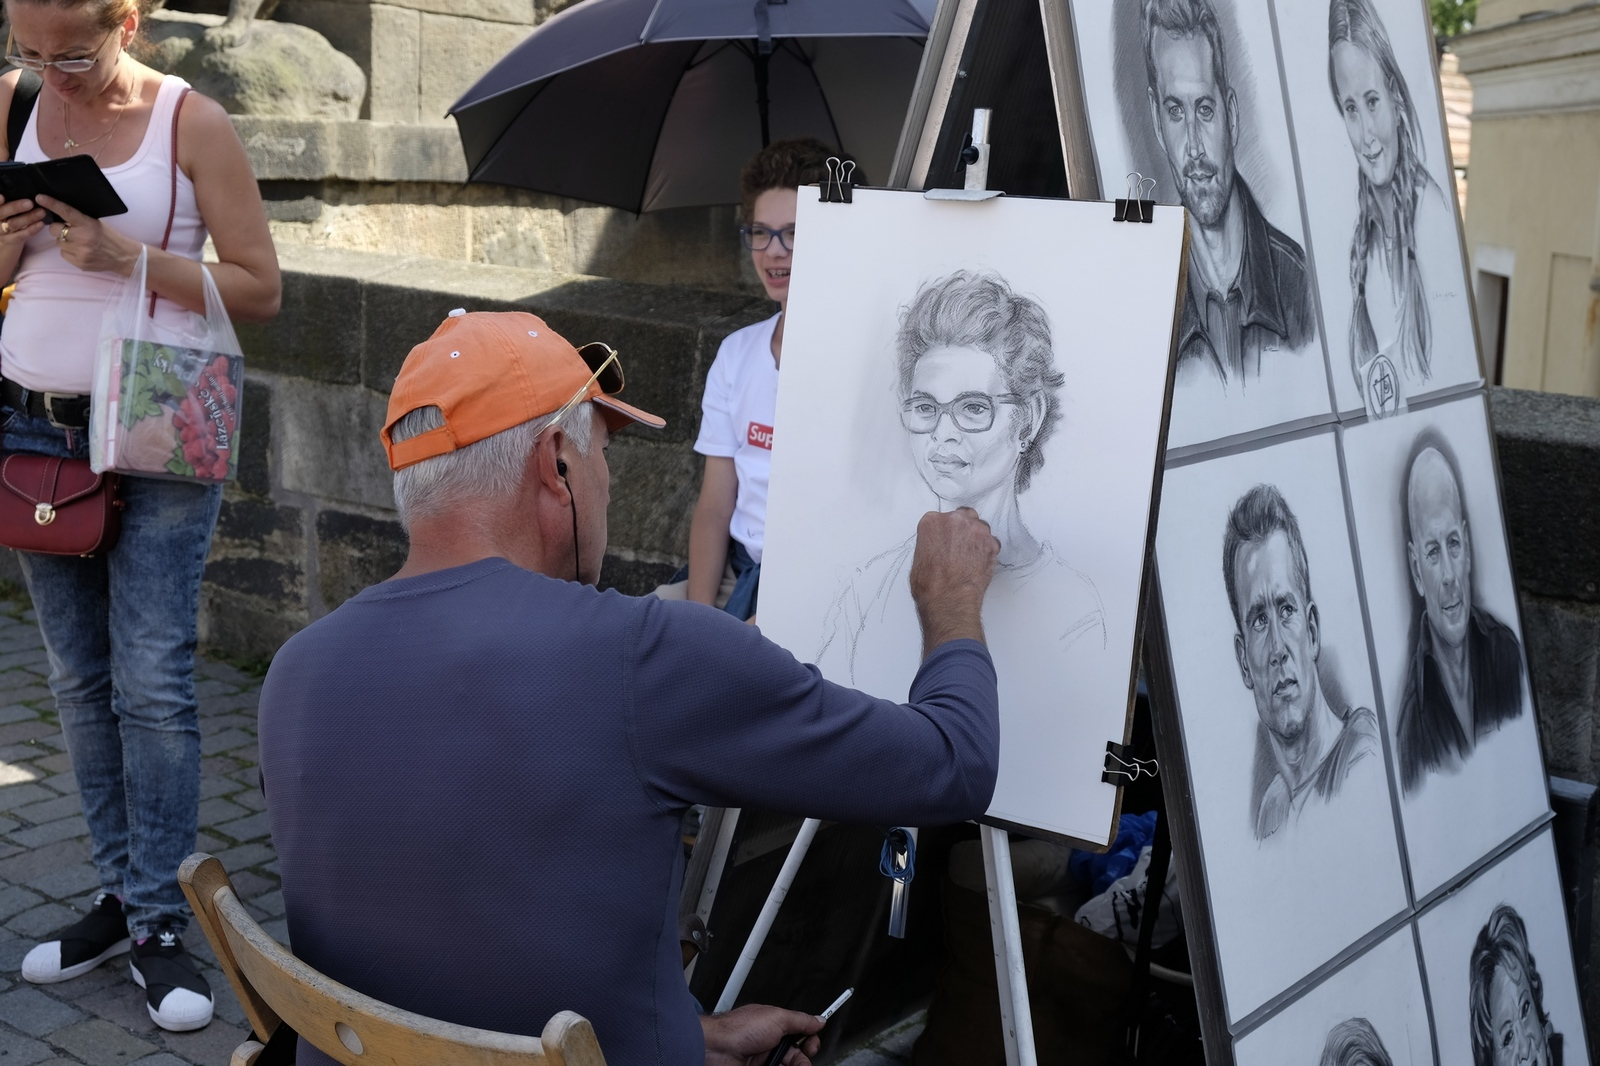 Watching an artist at work, Charles Bridge, Prague